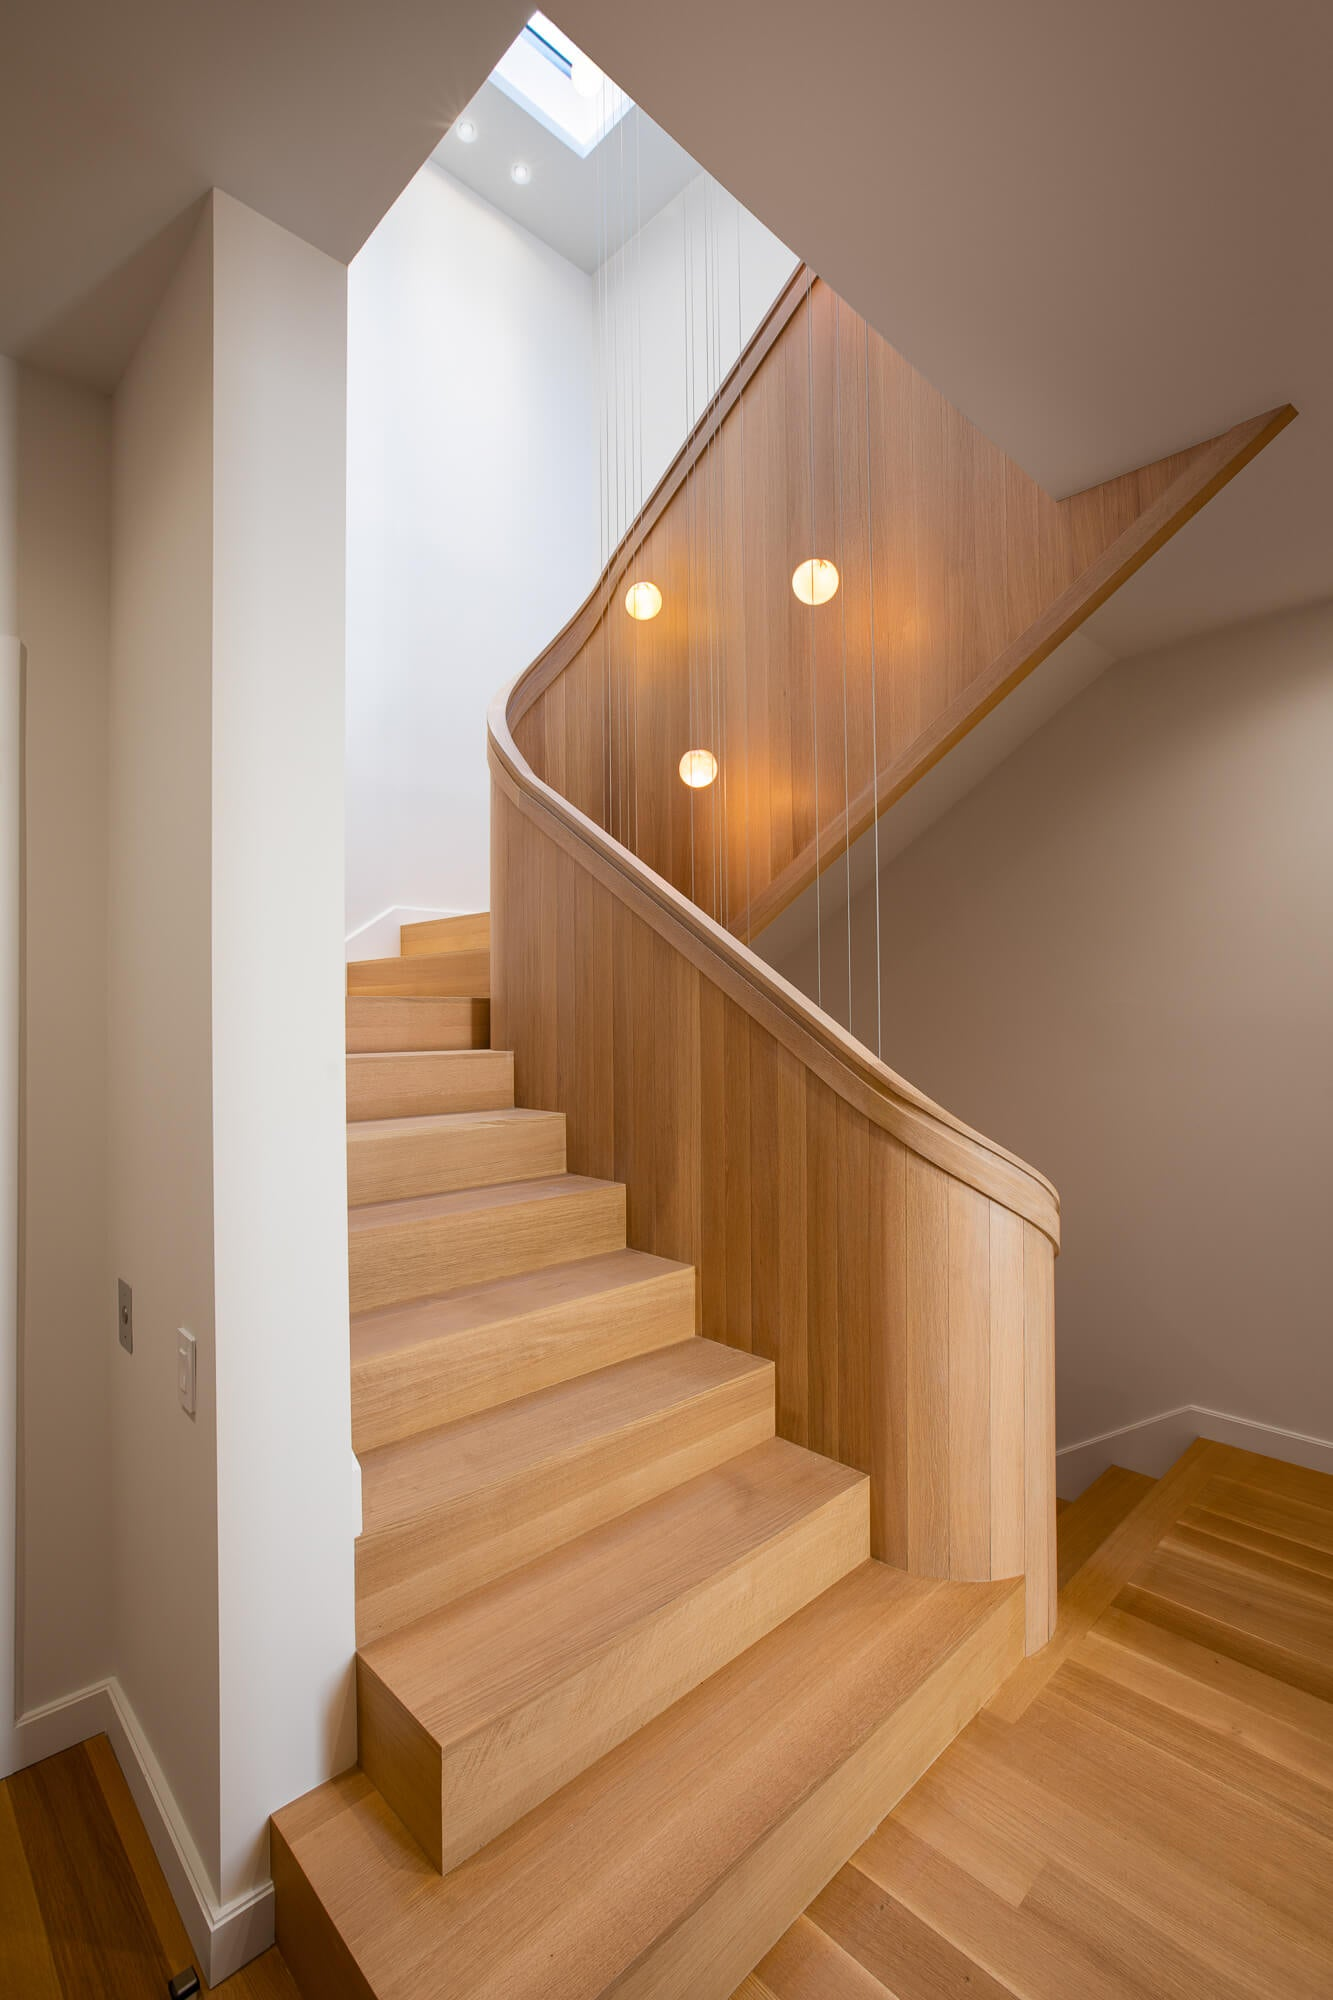 Beautiful rift sawn white oak spiraling staircase finished with Rubio Monocoat's oil based wood finish.